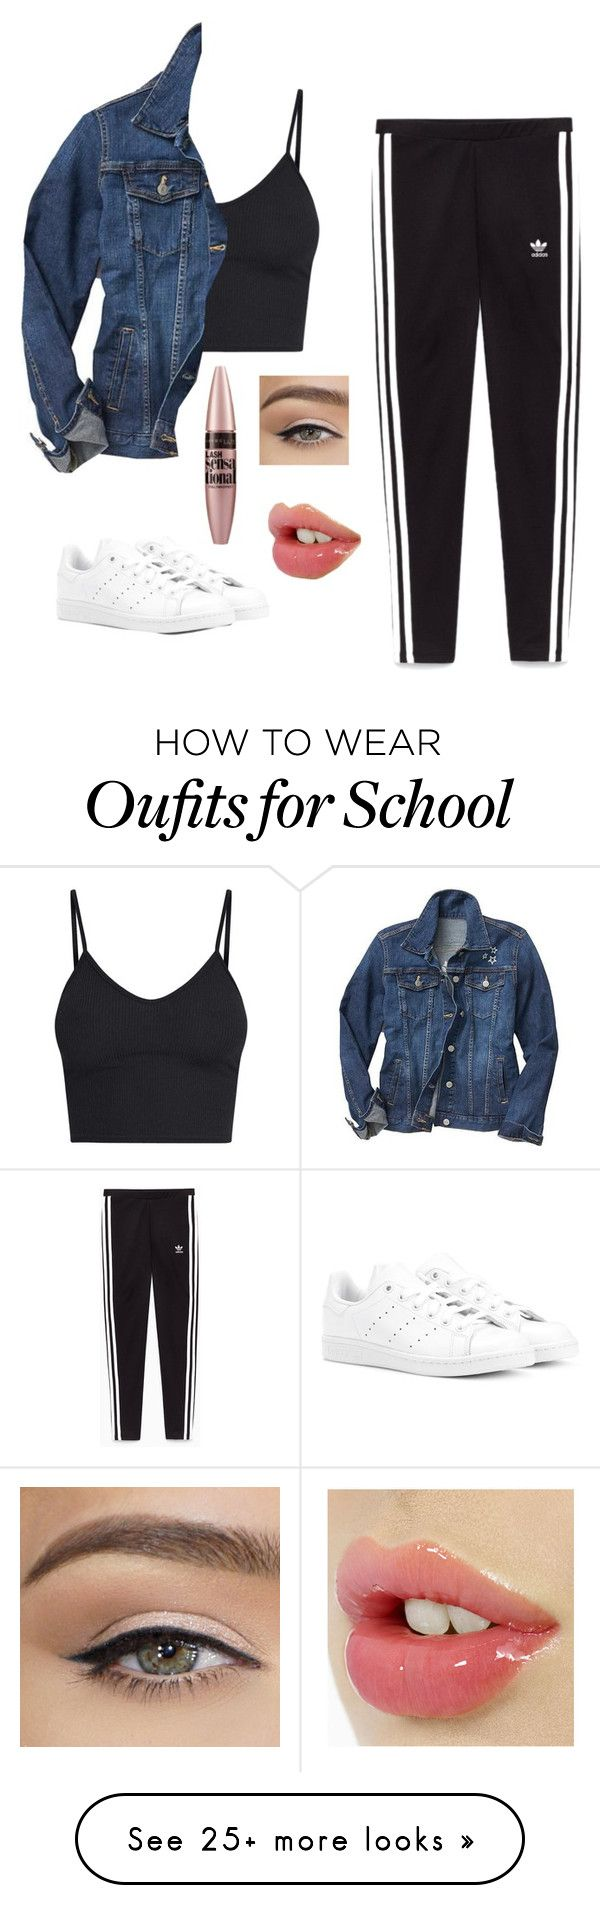 """school"" by mysterioussunflower on Polyvore featuring Gap, adidas Originals and Maybelline"